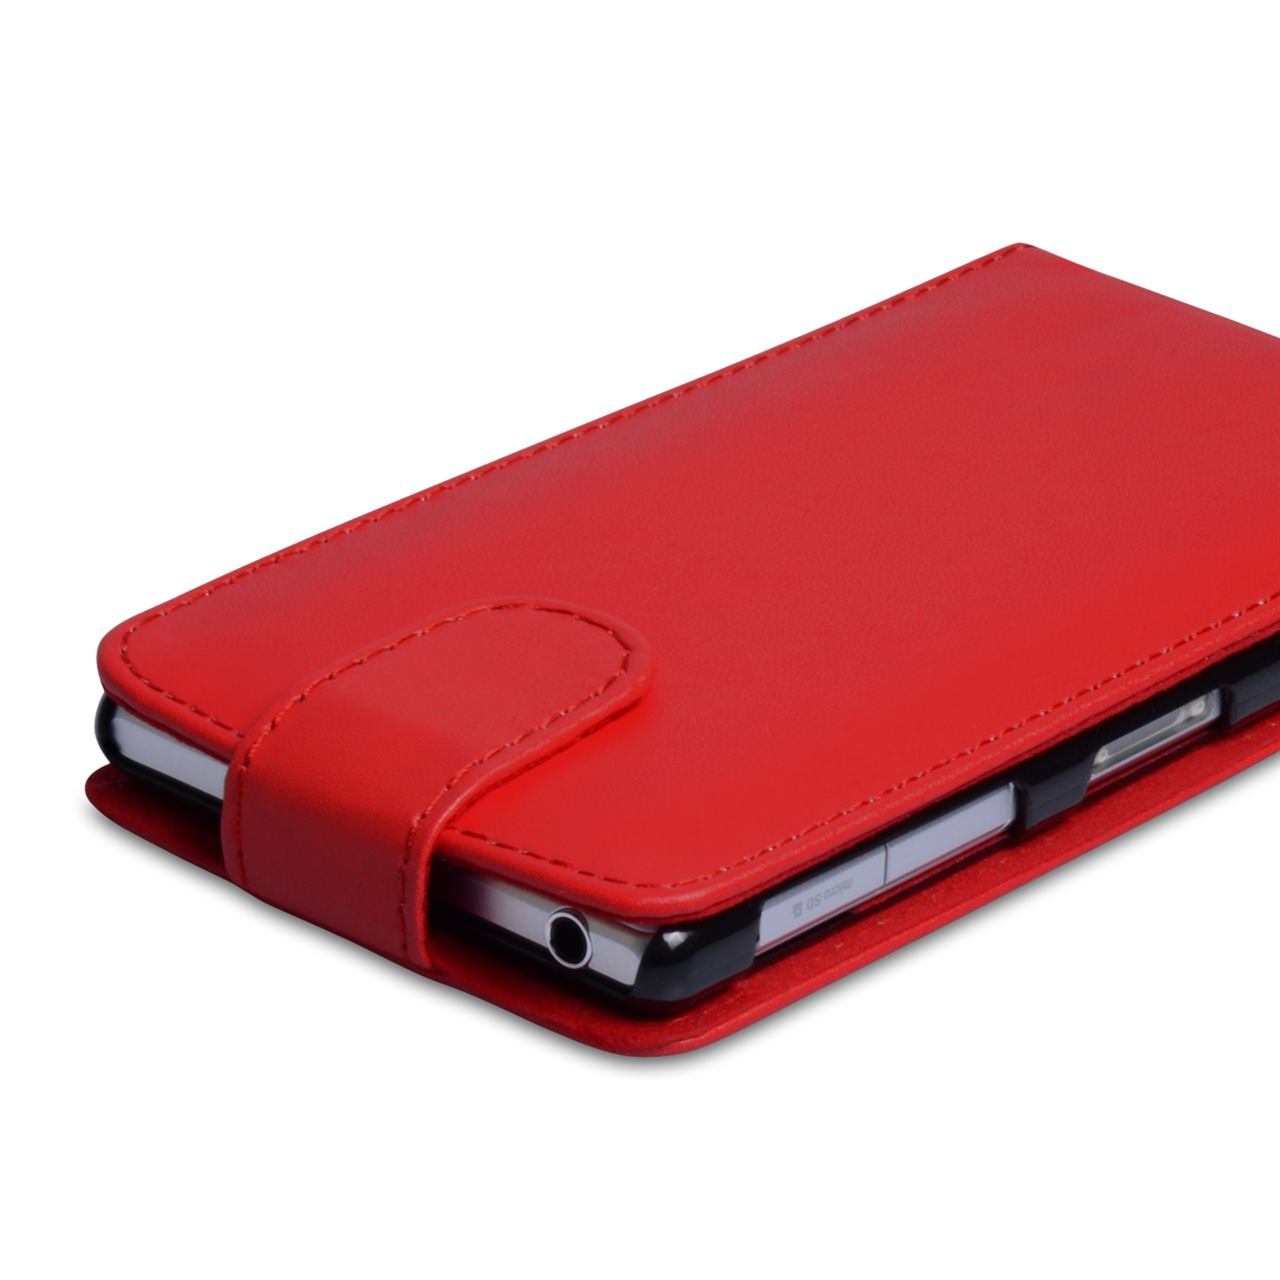 YouSave Accessories Sony Xperia Z1 Leather Effect Flip Case - Red